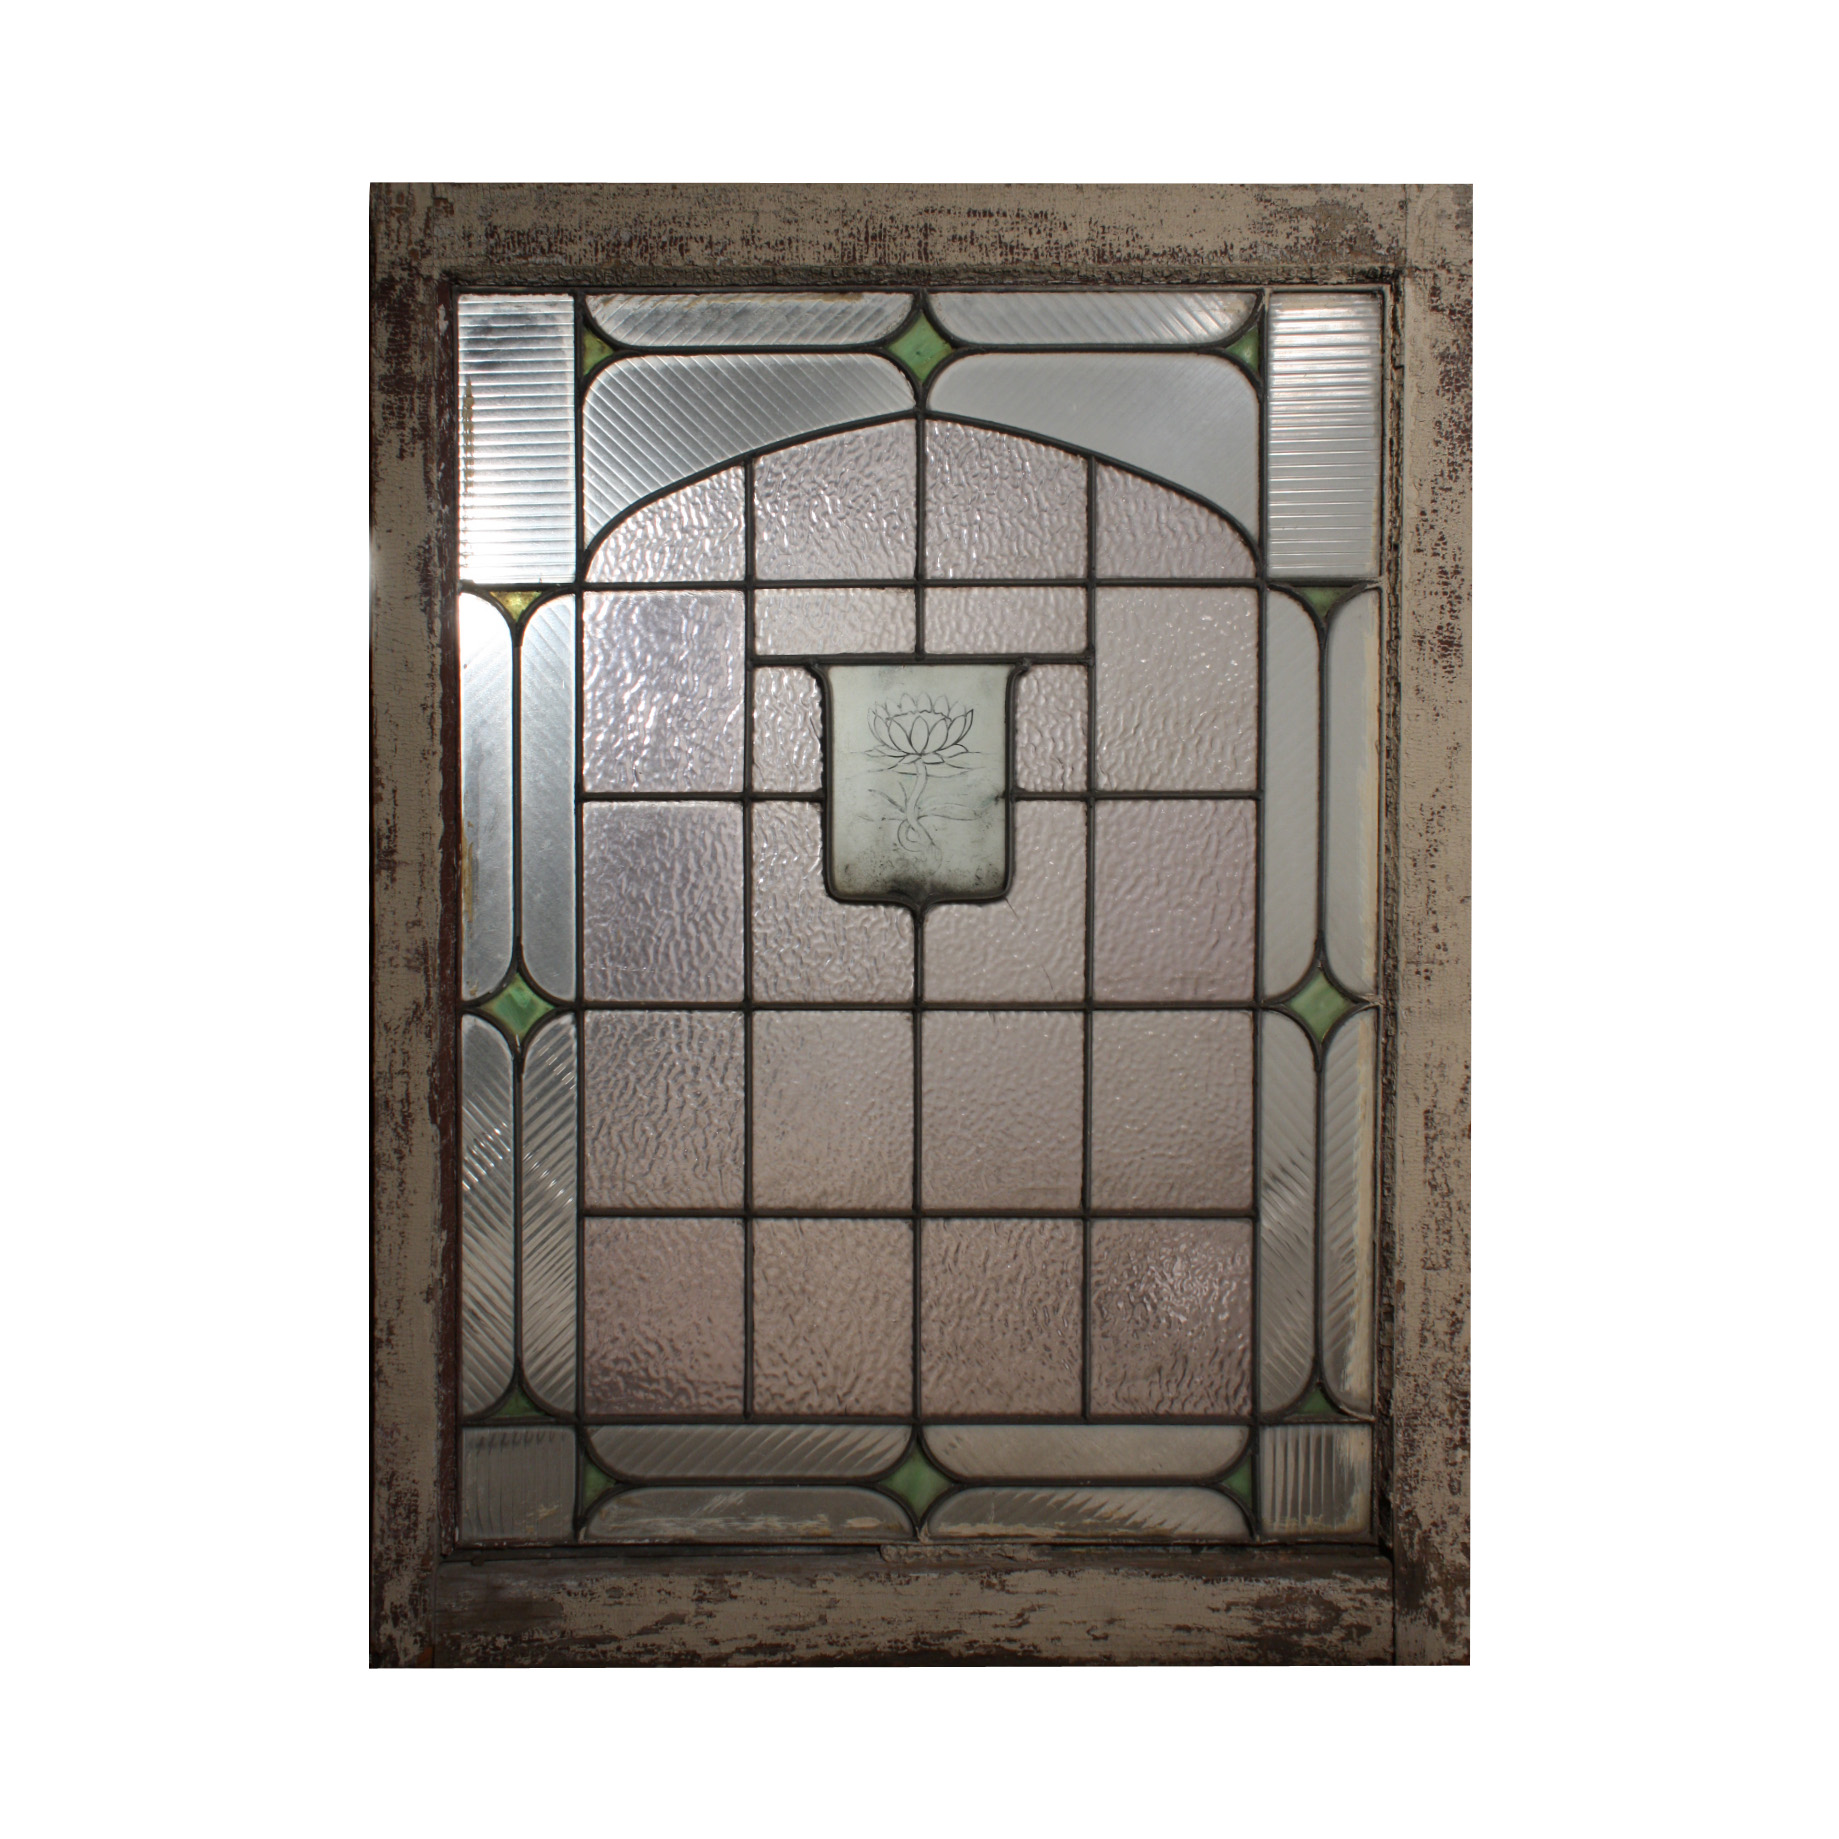 This Is A Beautiful Antique American Stained And Leaded Gl Window Dating From The 1920 S Featuring An Etched Painted Design